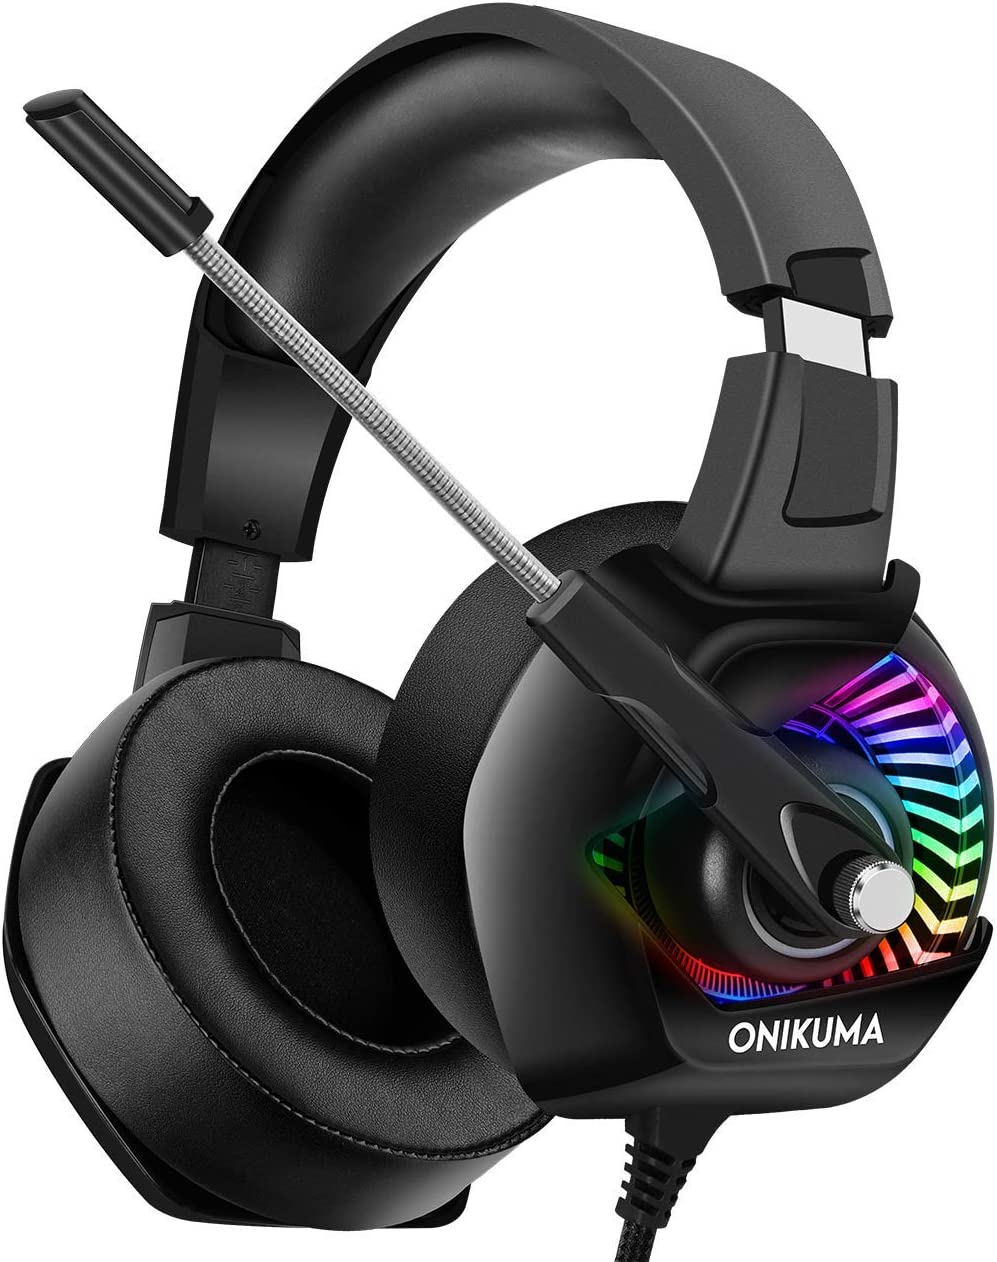 Gaming Headphones – ONIKUMA PS4 Gaming Headset with Mic, 7.1 Surround Sound RGB LED Light, Noise Canceling Earpads, Soft Memory Earmuff for PS4, Xbox One, PC, Mac, Laptop, Nintendo Switch